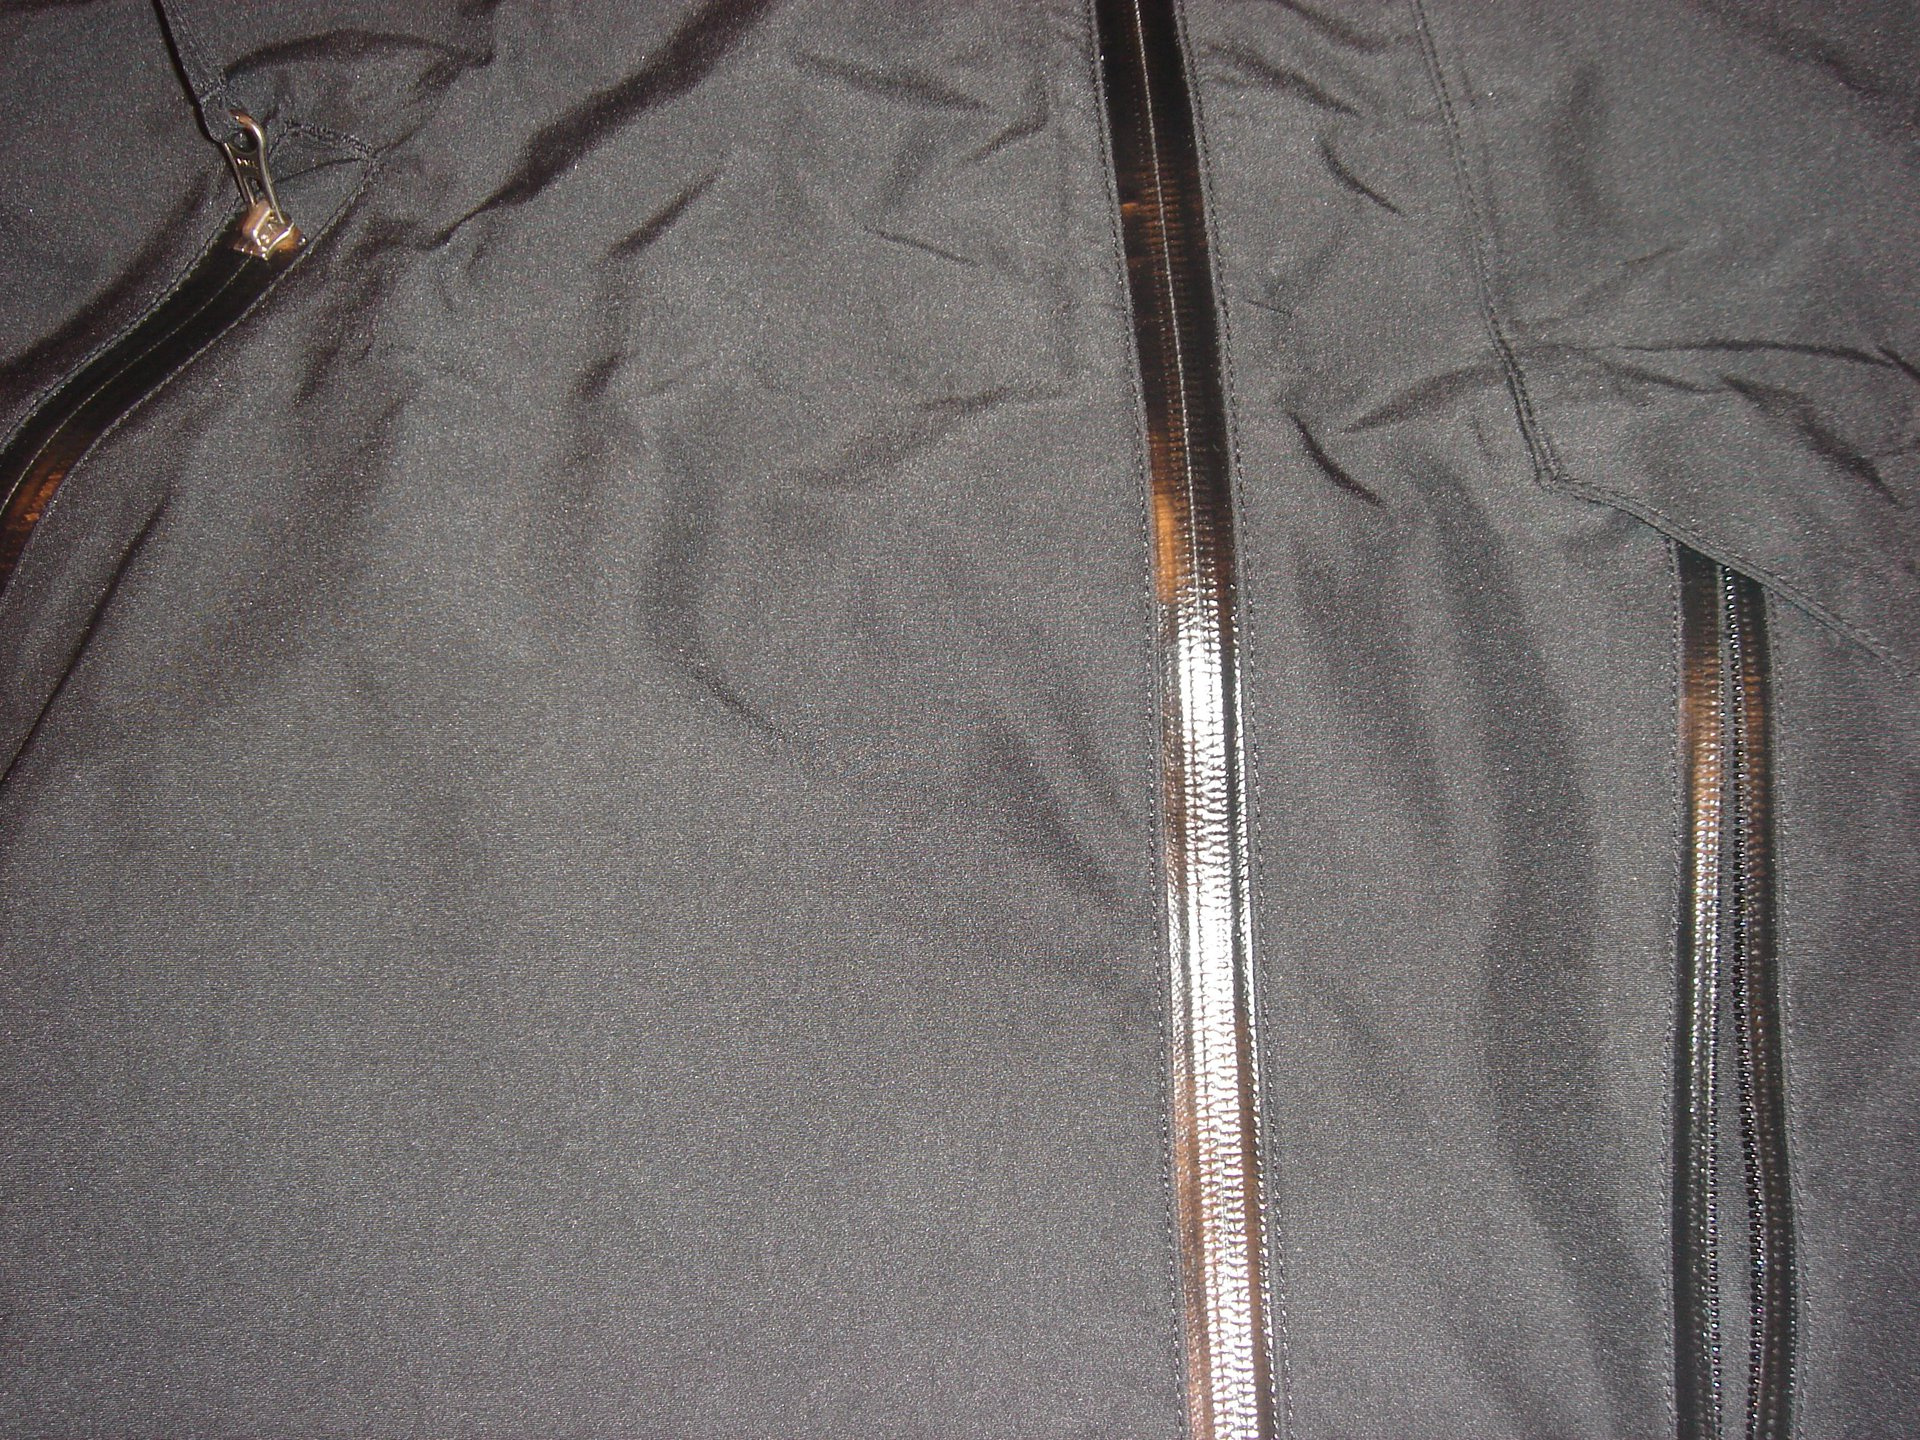 Zippers (SEAM SEALED)